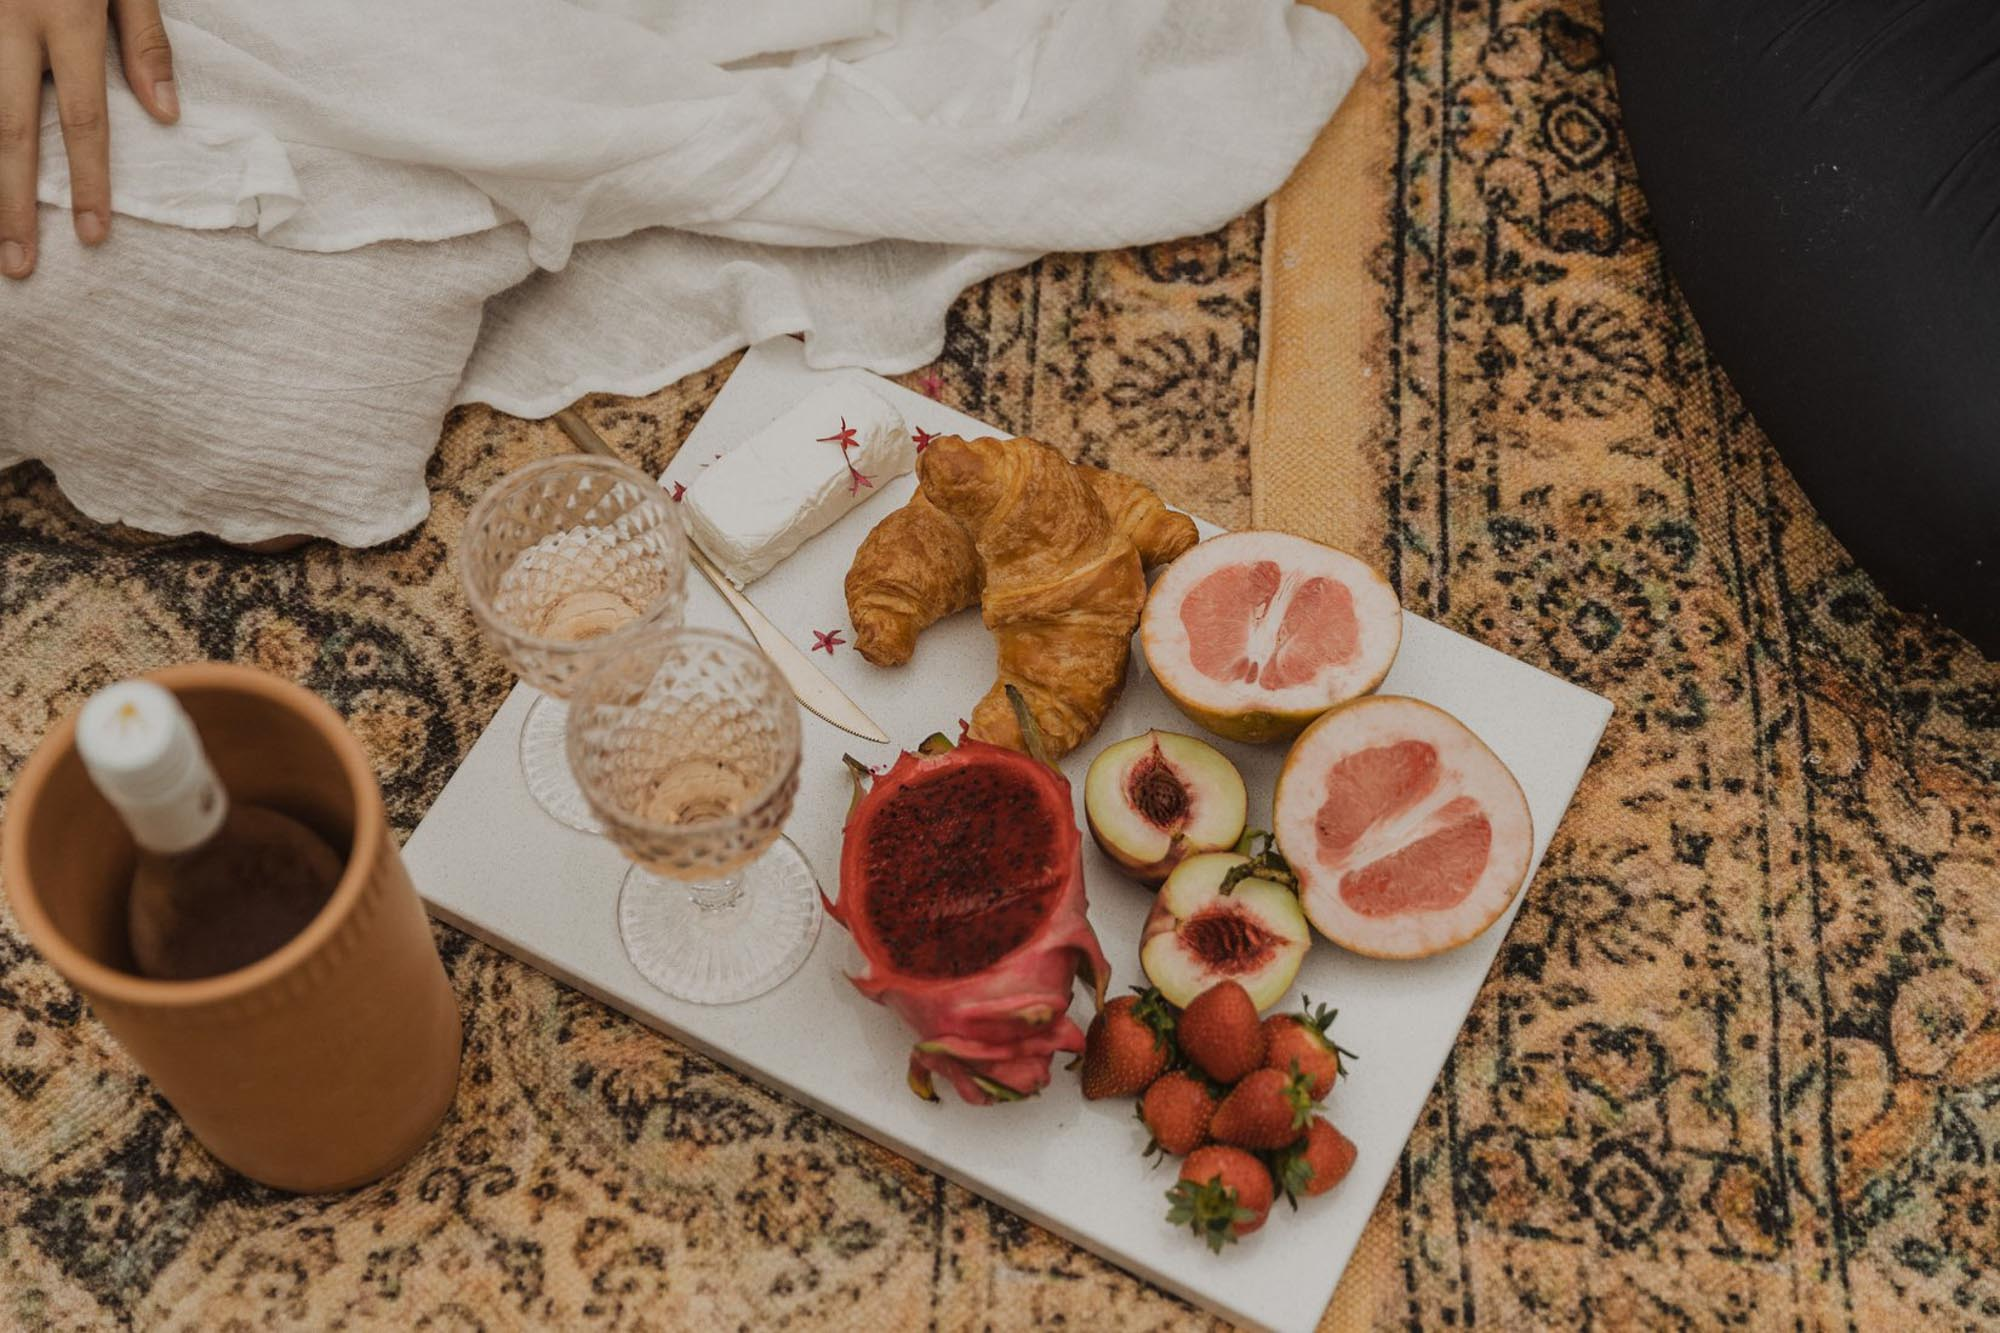 Styled Photshoot - Orchard Picnic Cairns  - Event Styling and Catering by The Collection Co.jpg